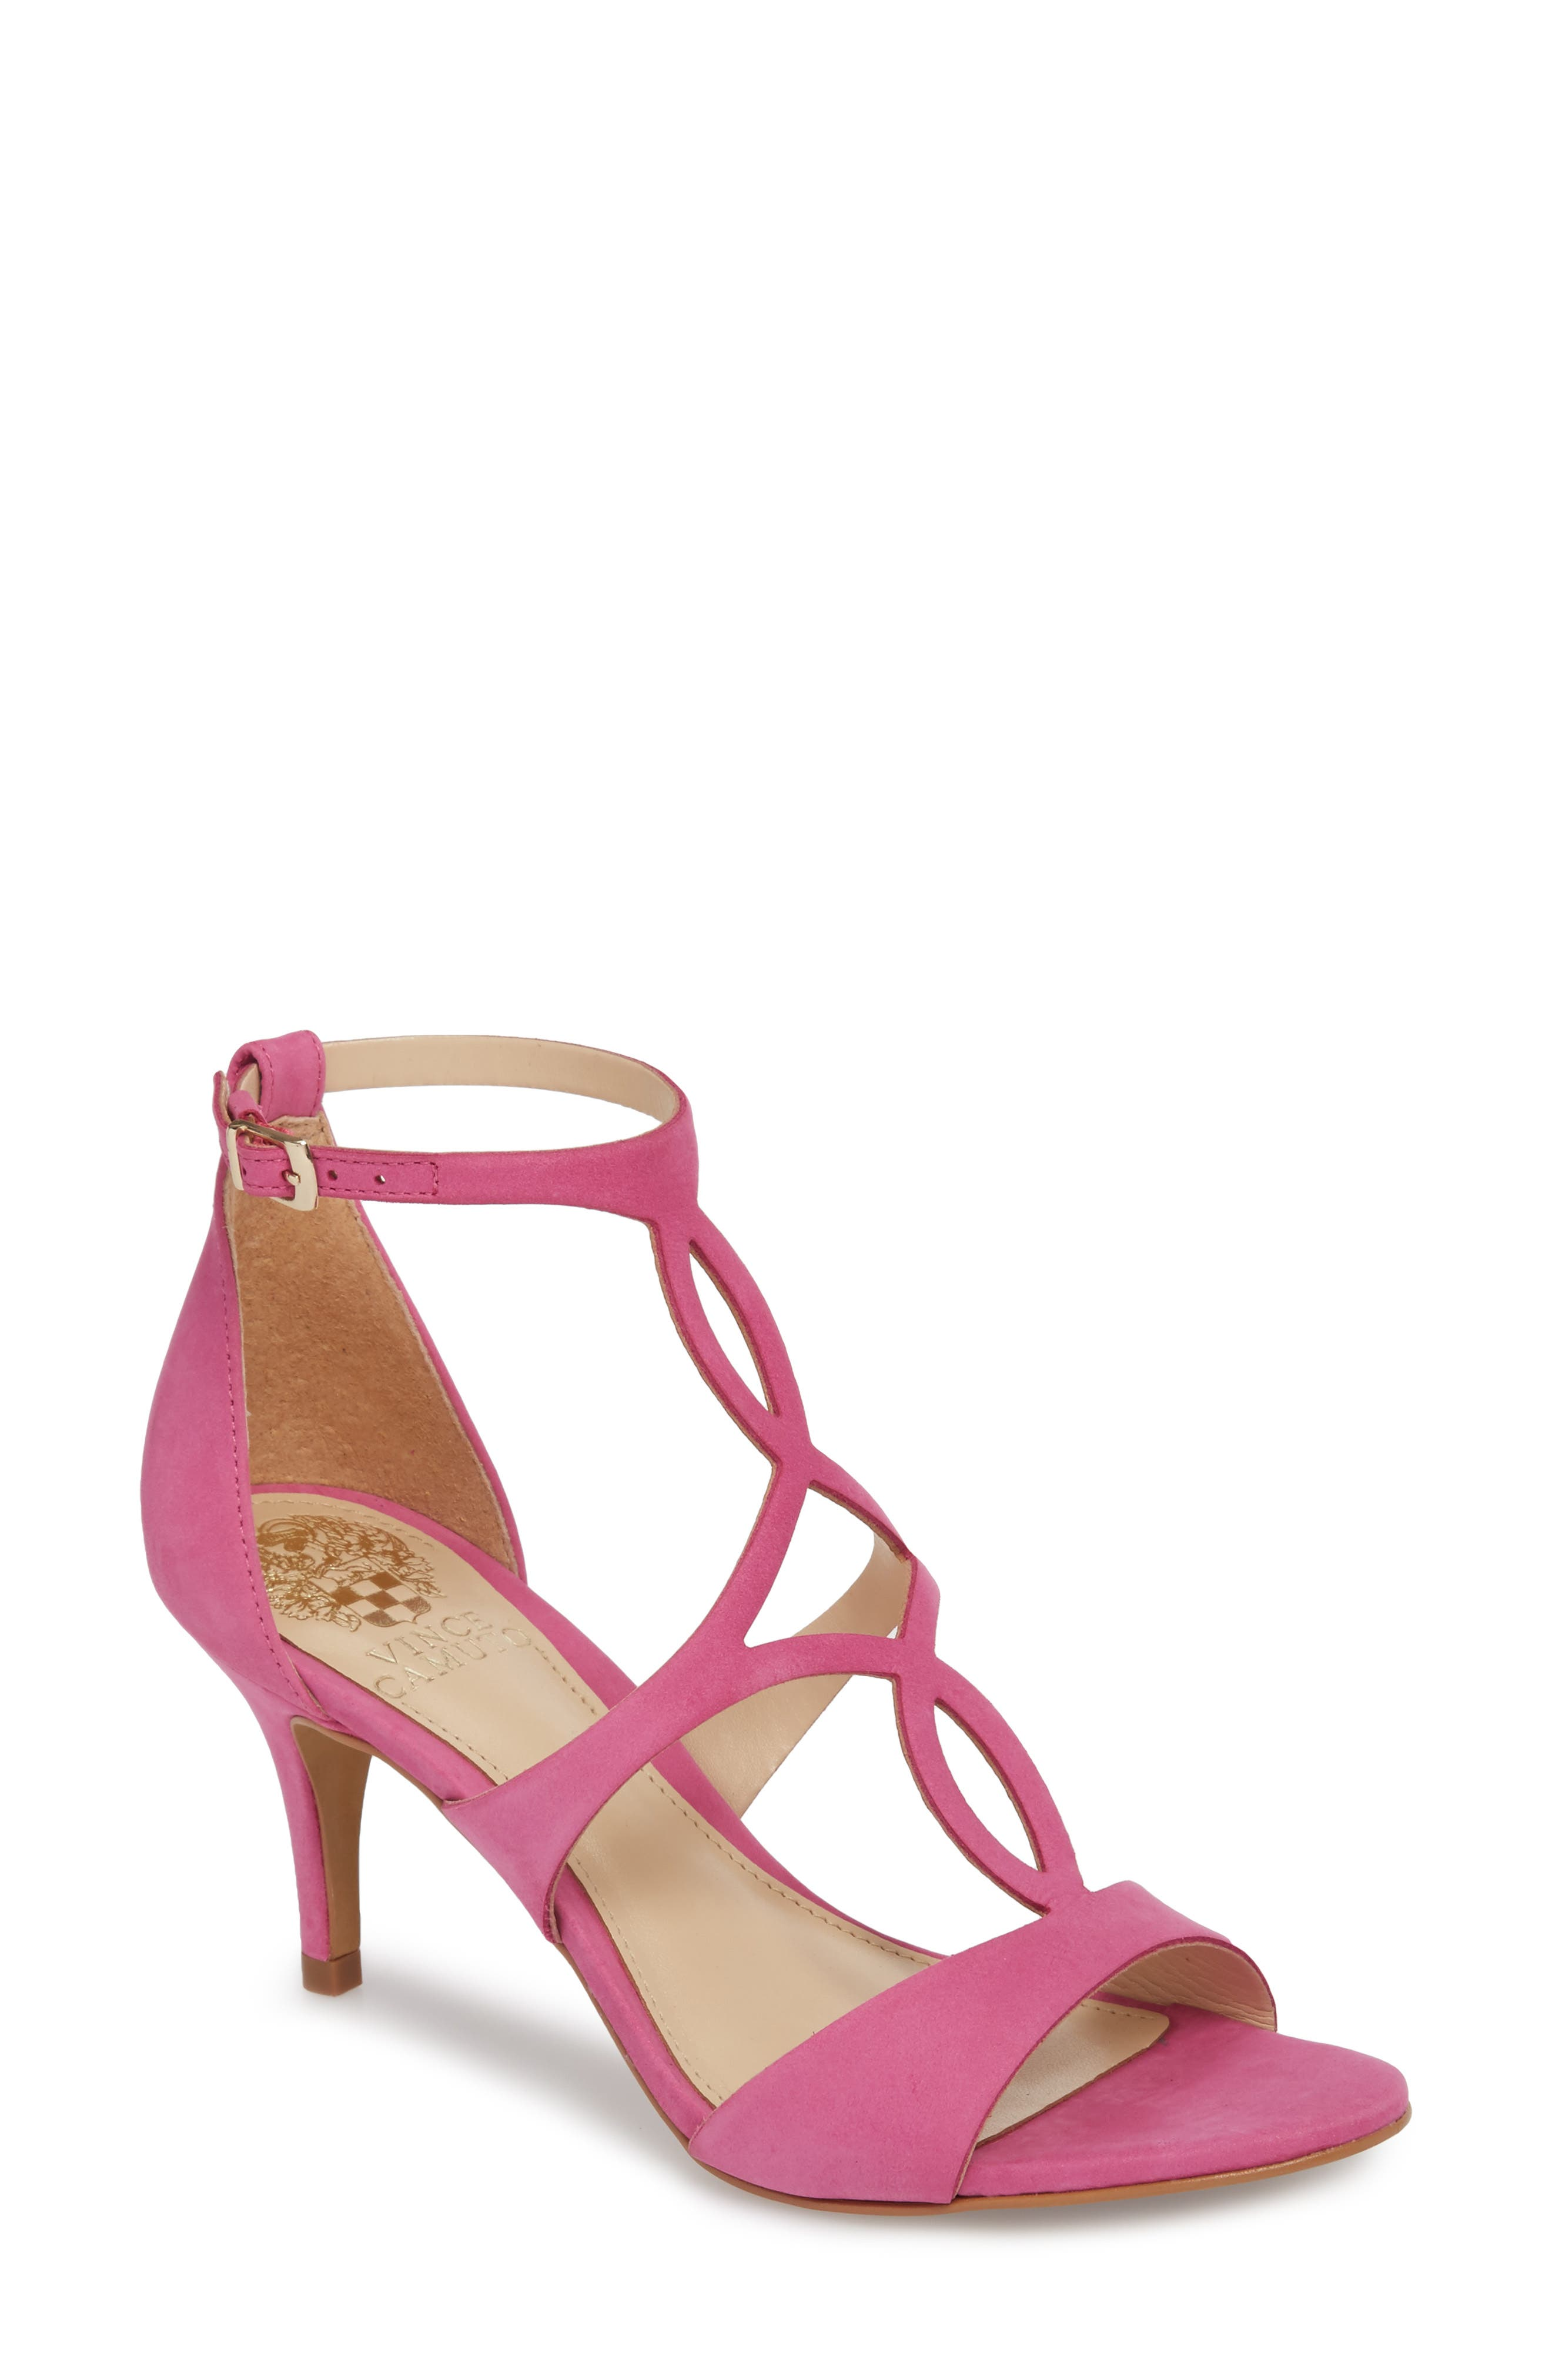 Payto Sandal,                         Main,                         color, Pink Leather